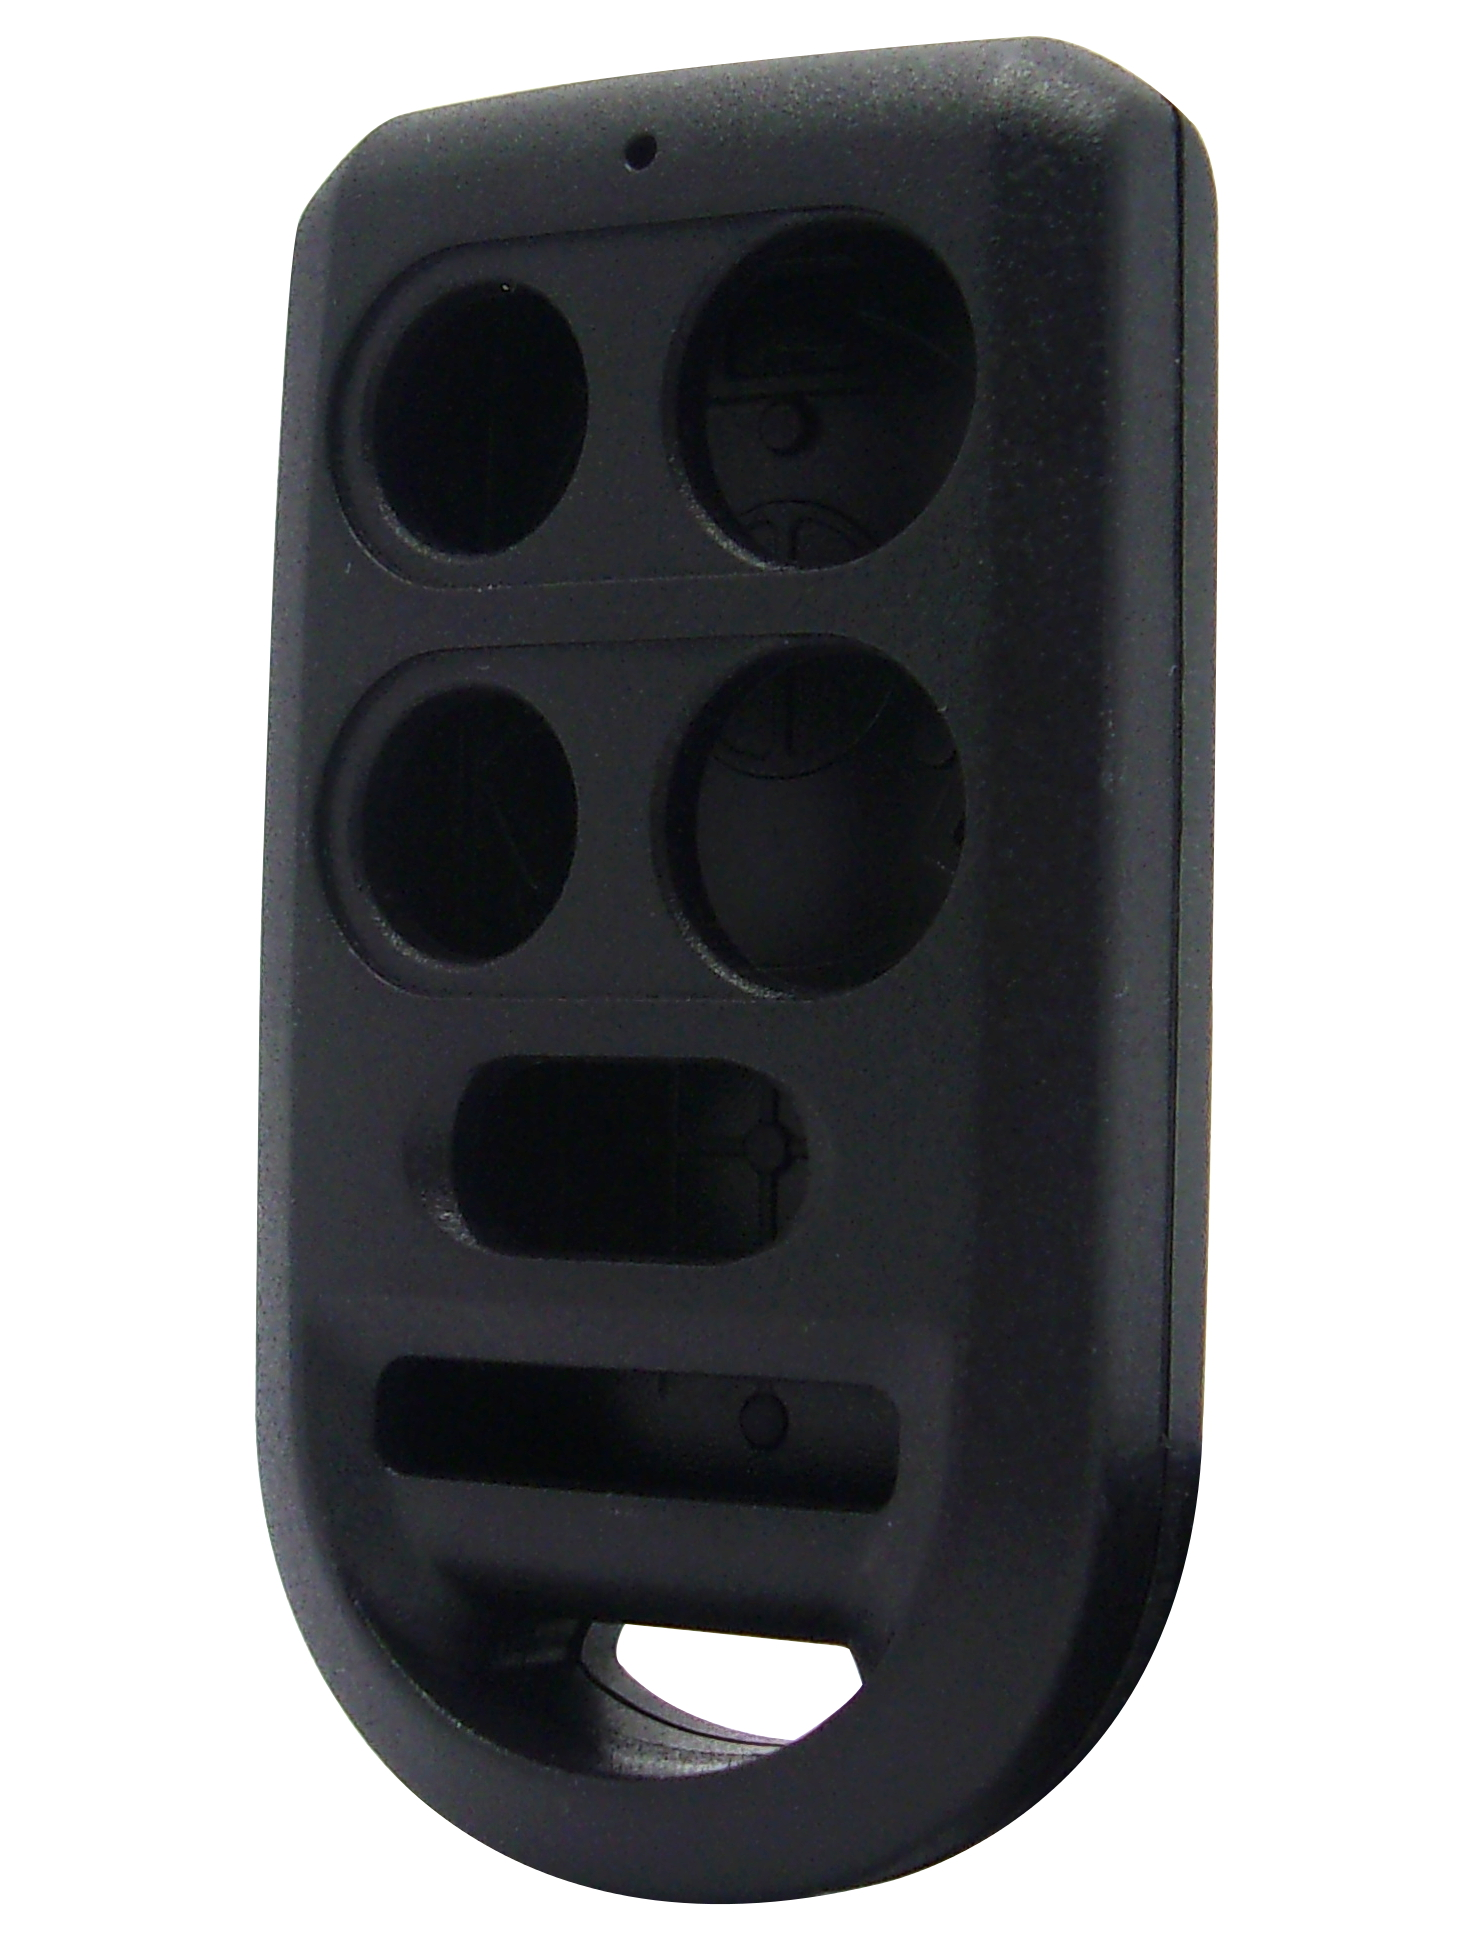 Black Replacement Remote Shell - 6 Button